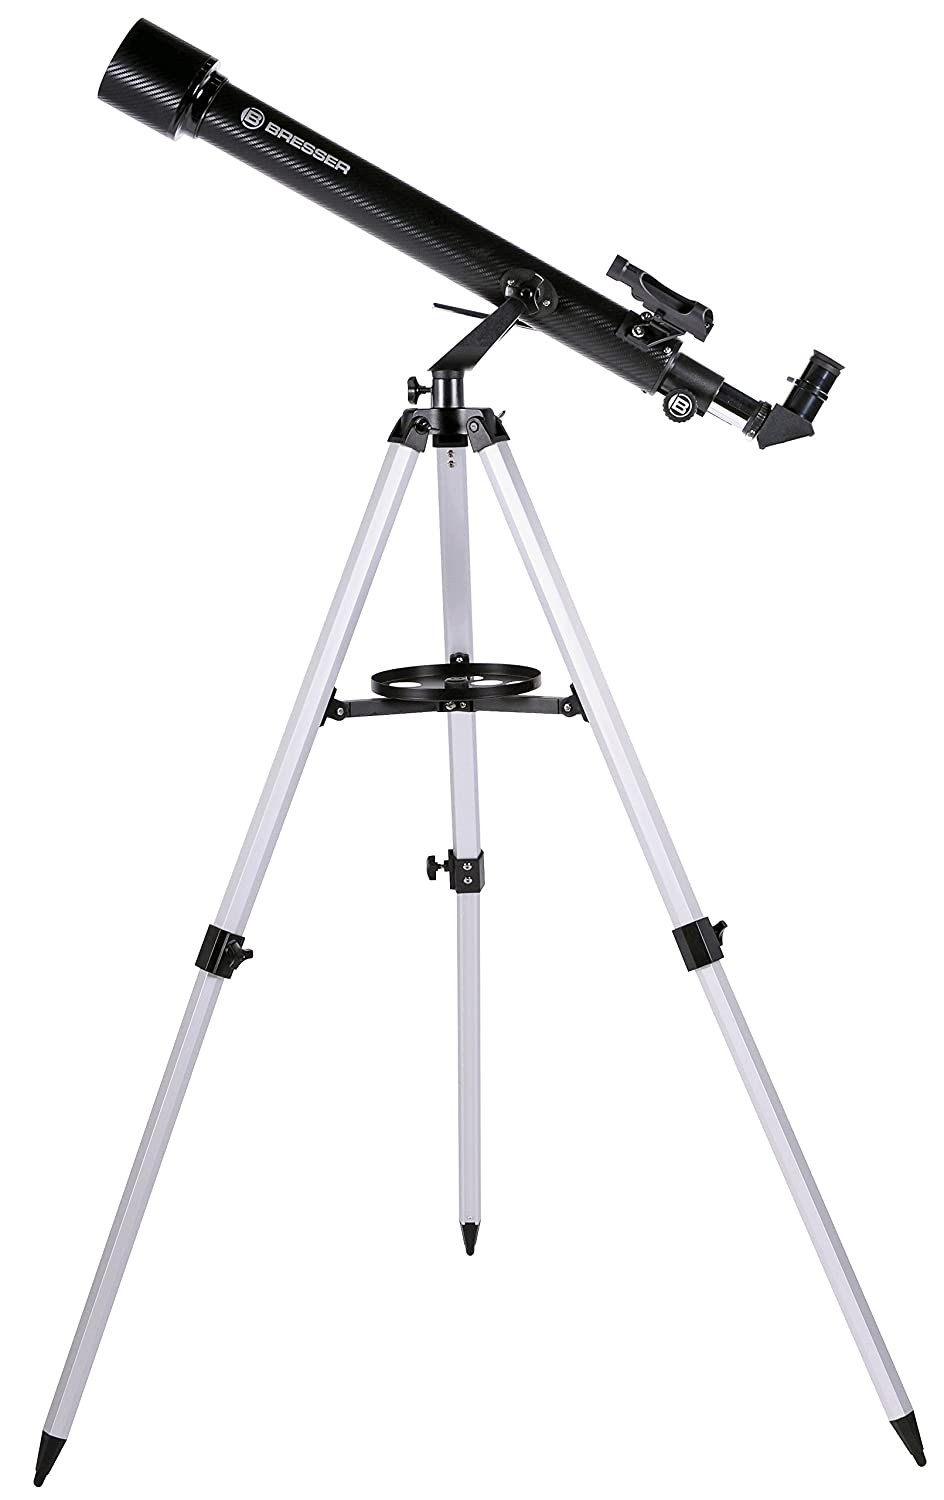 Bresser Refractor Telescope Arcturus 60/700 Alt-Azimuth with tripod 4511609